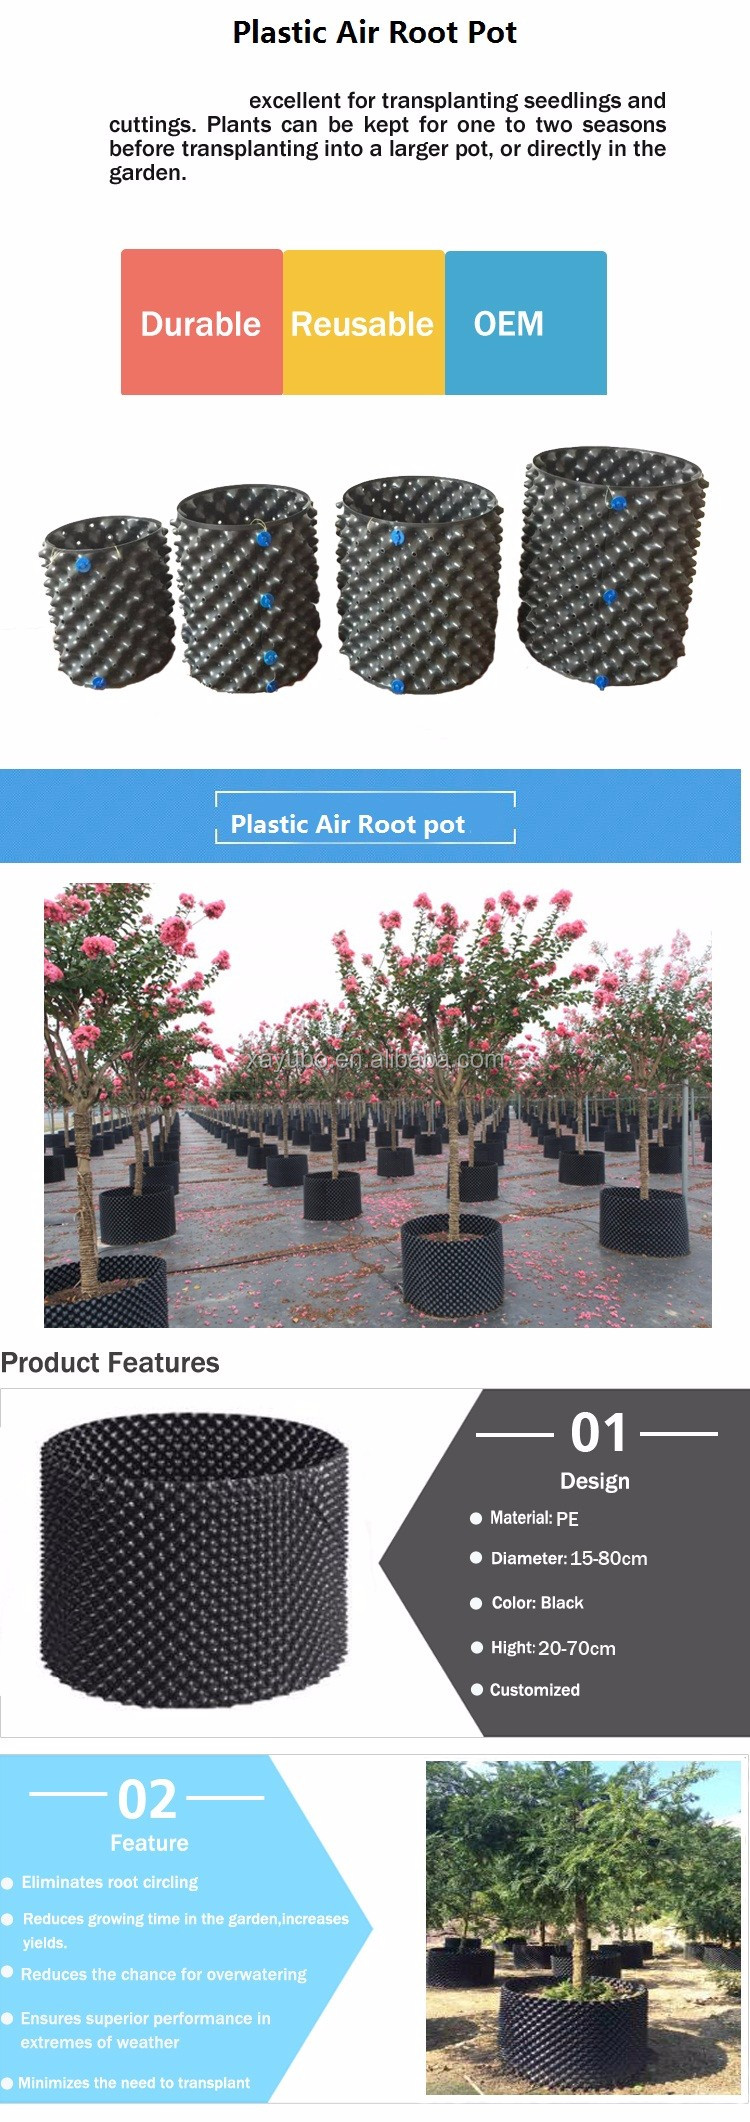 Hot sale plastic air root pot hydroponics, air root tree pot for gardening